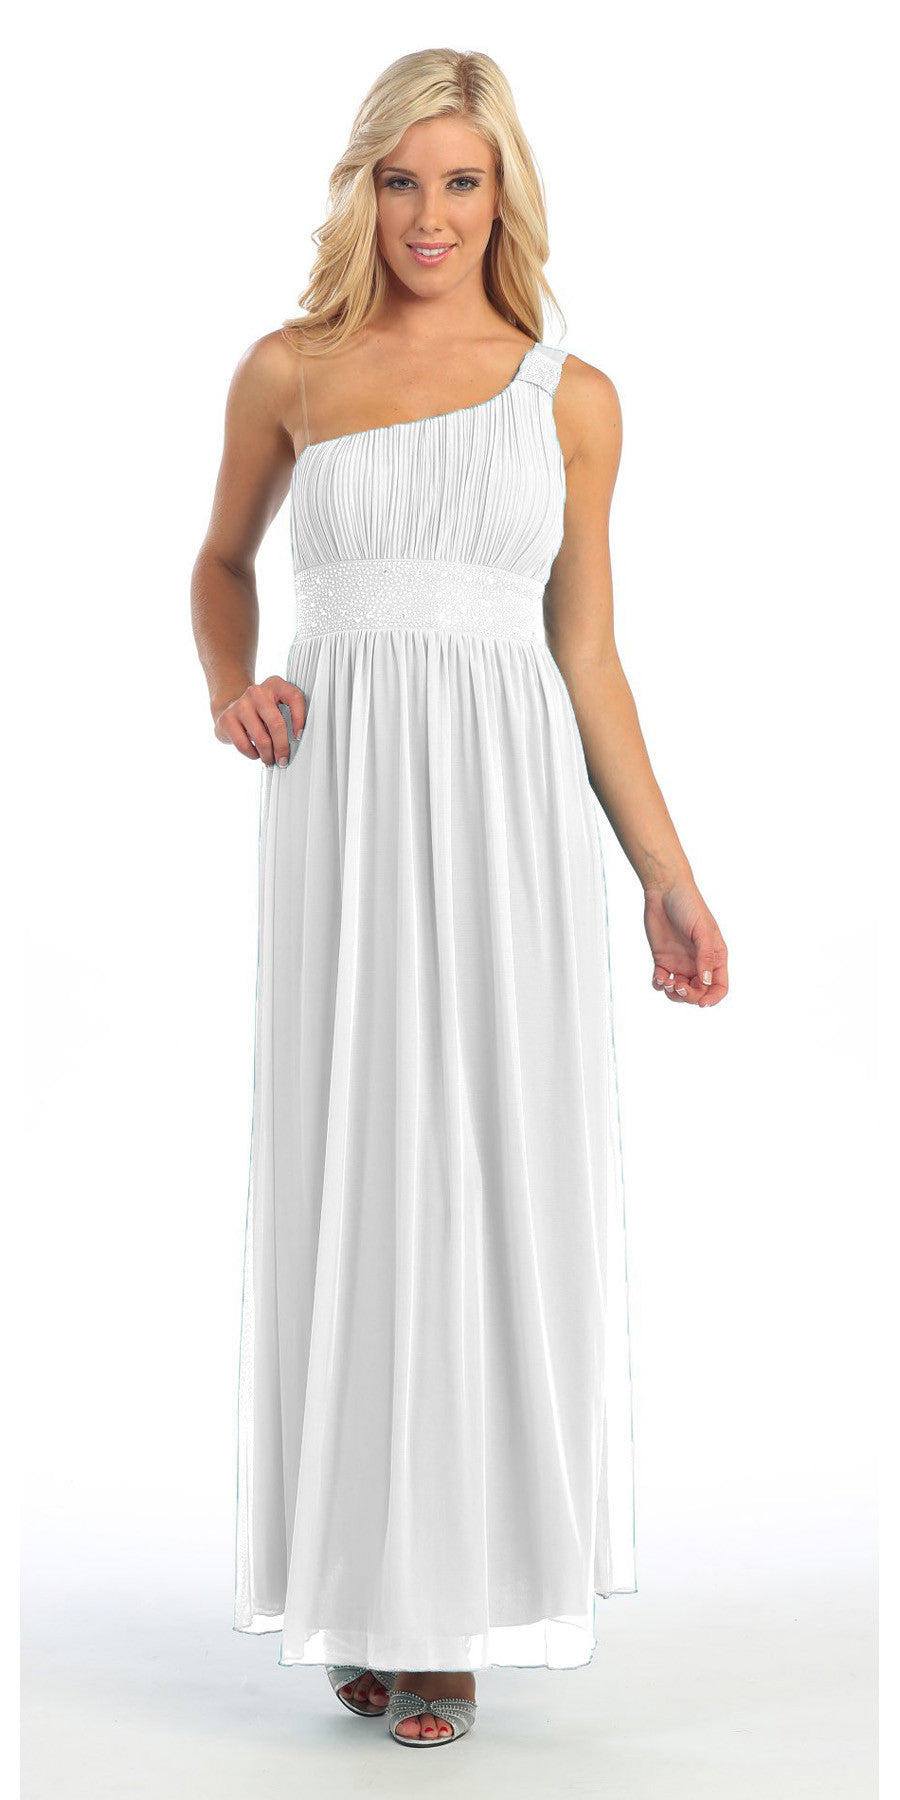 fbebecf74ddb Long White One Shoulder Evening Gown Chiffon Empire Waist Rhinestone. Tap  to expand